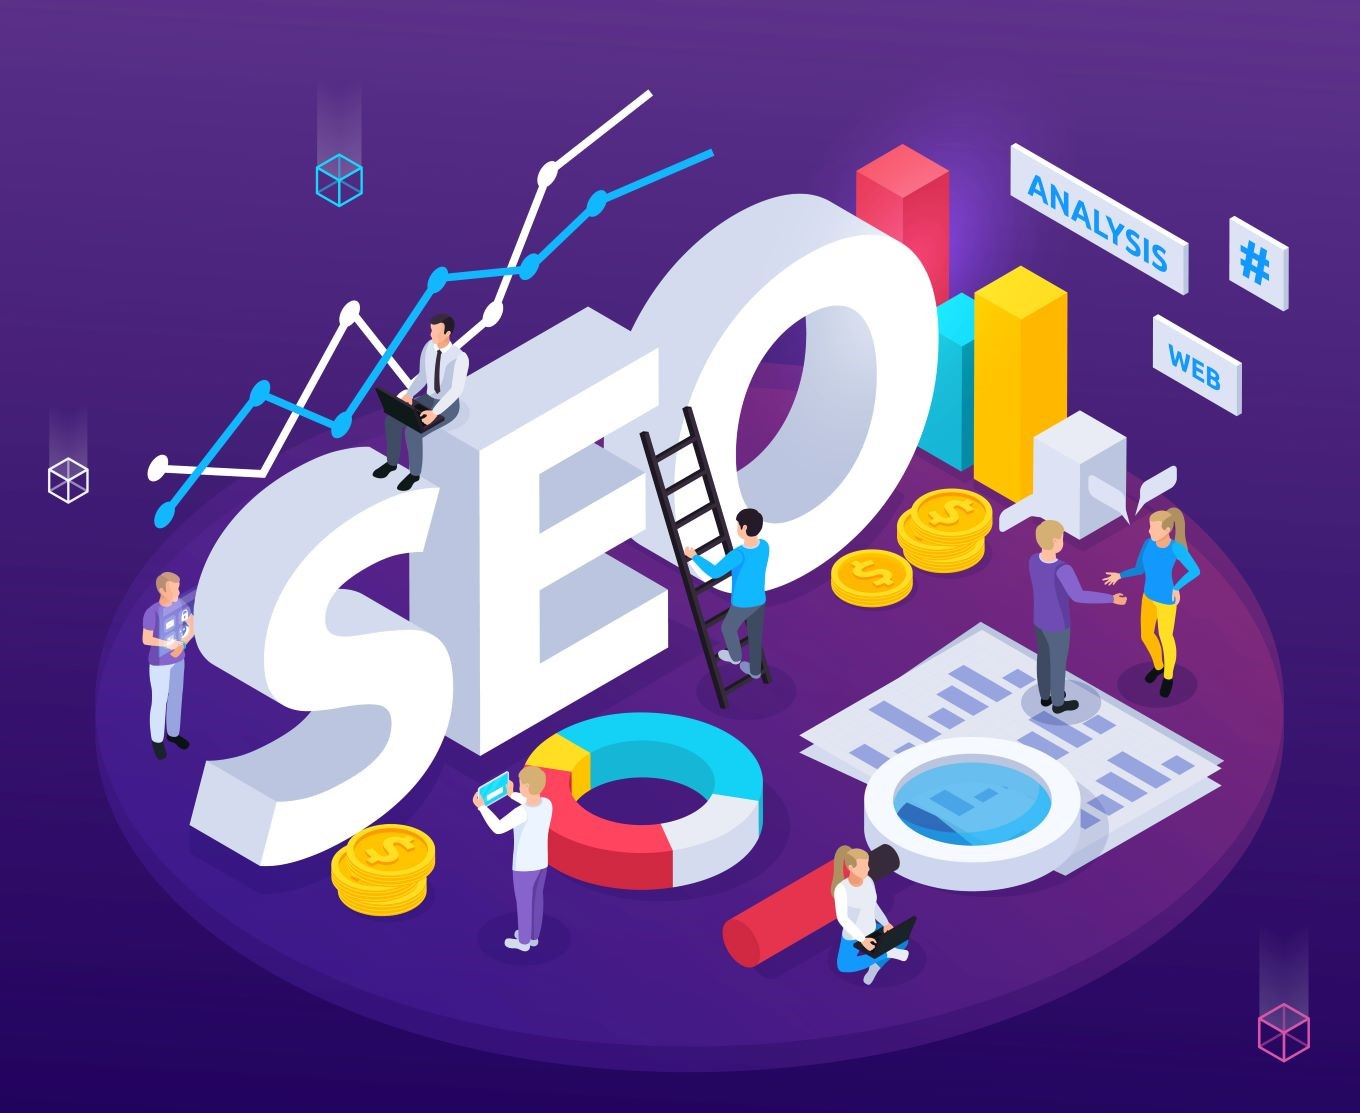 Working on SEO